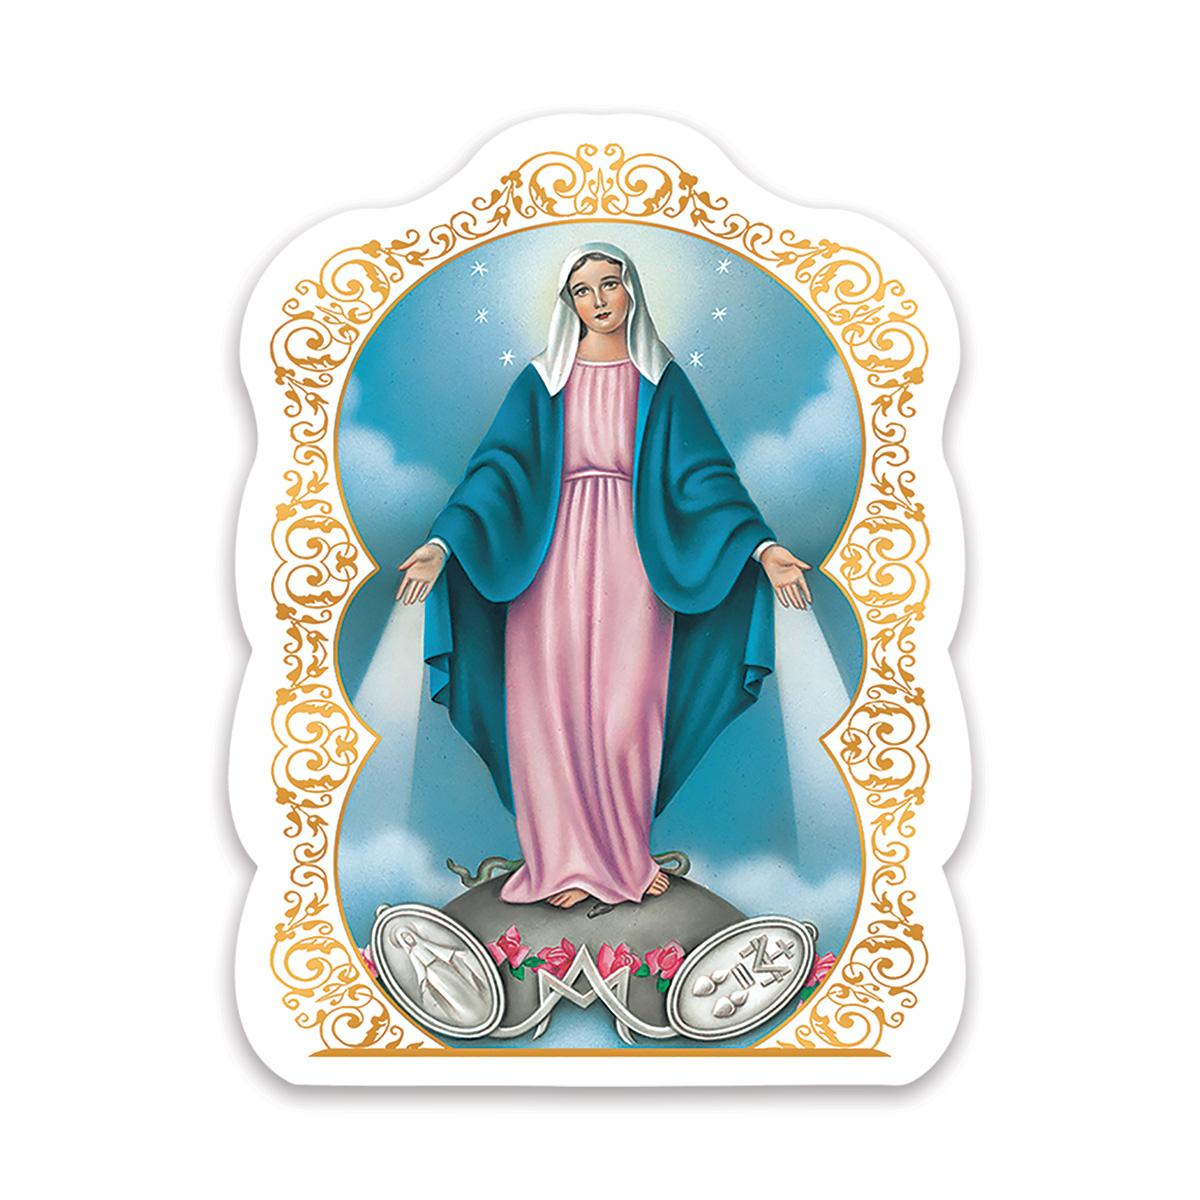 Our Lady of Grace and Medal : Gift Sticker Religious Virgin Mary Catholic Saint